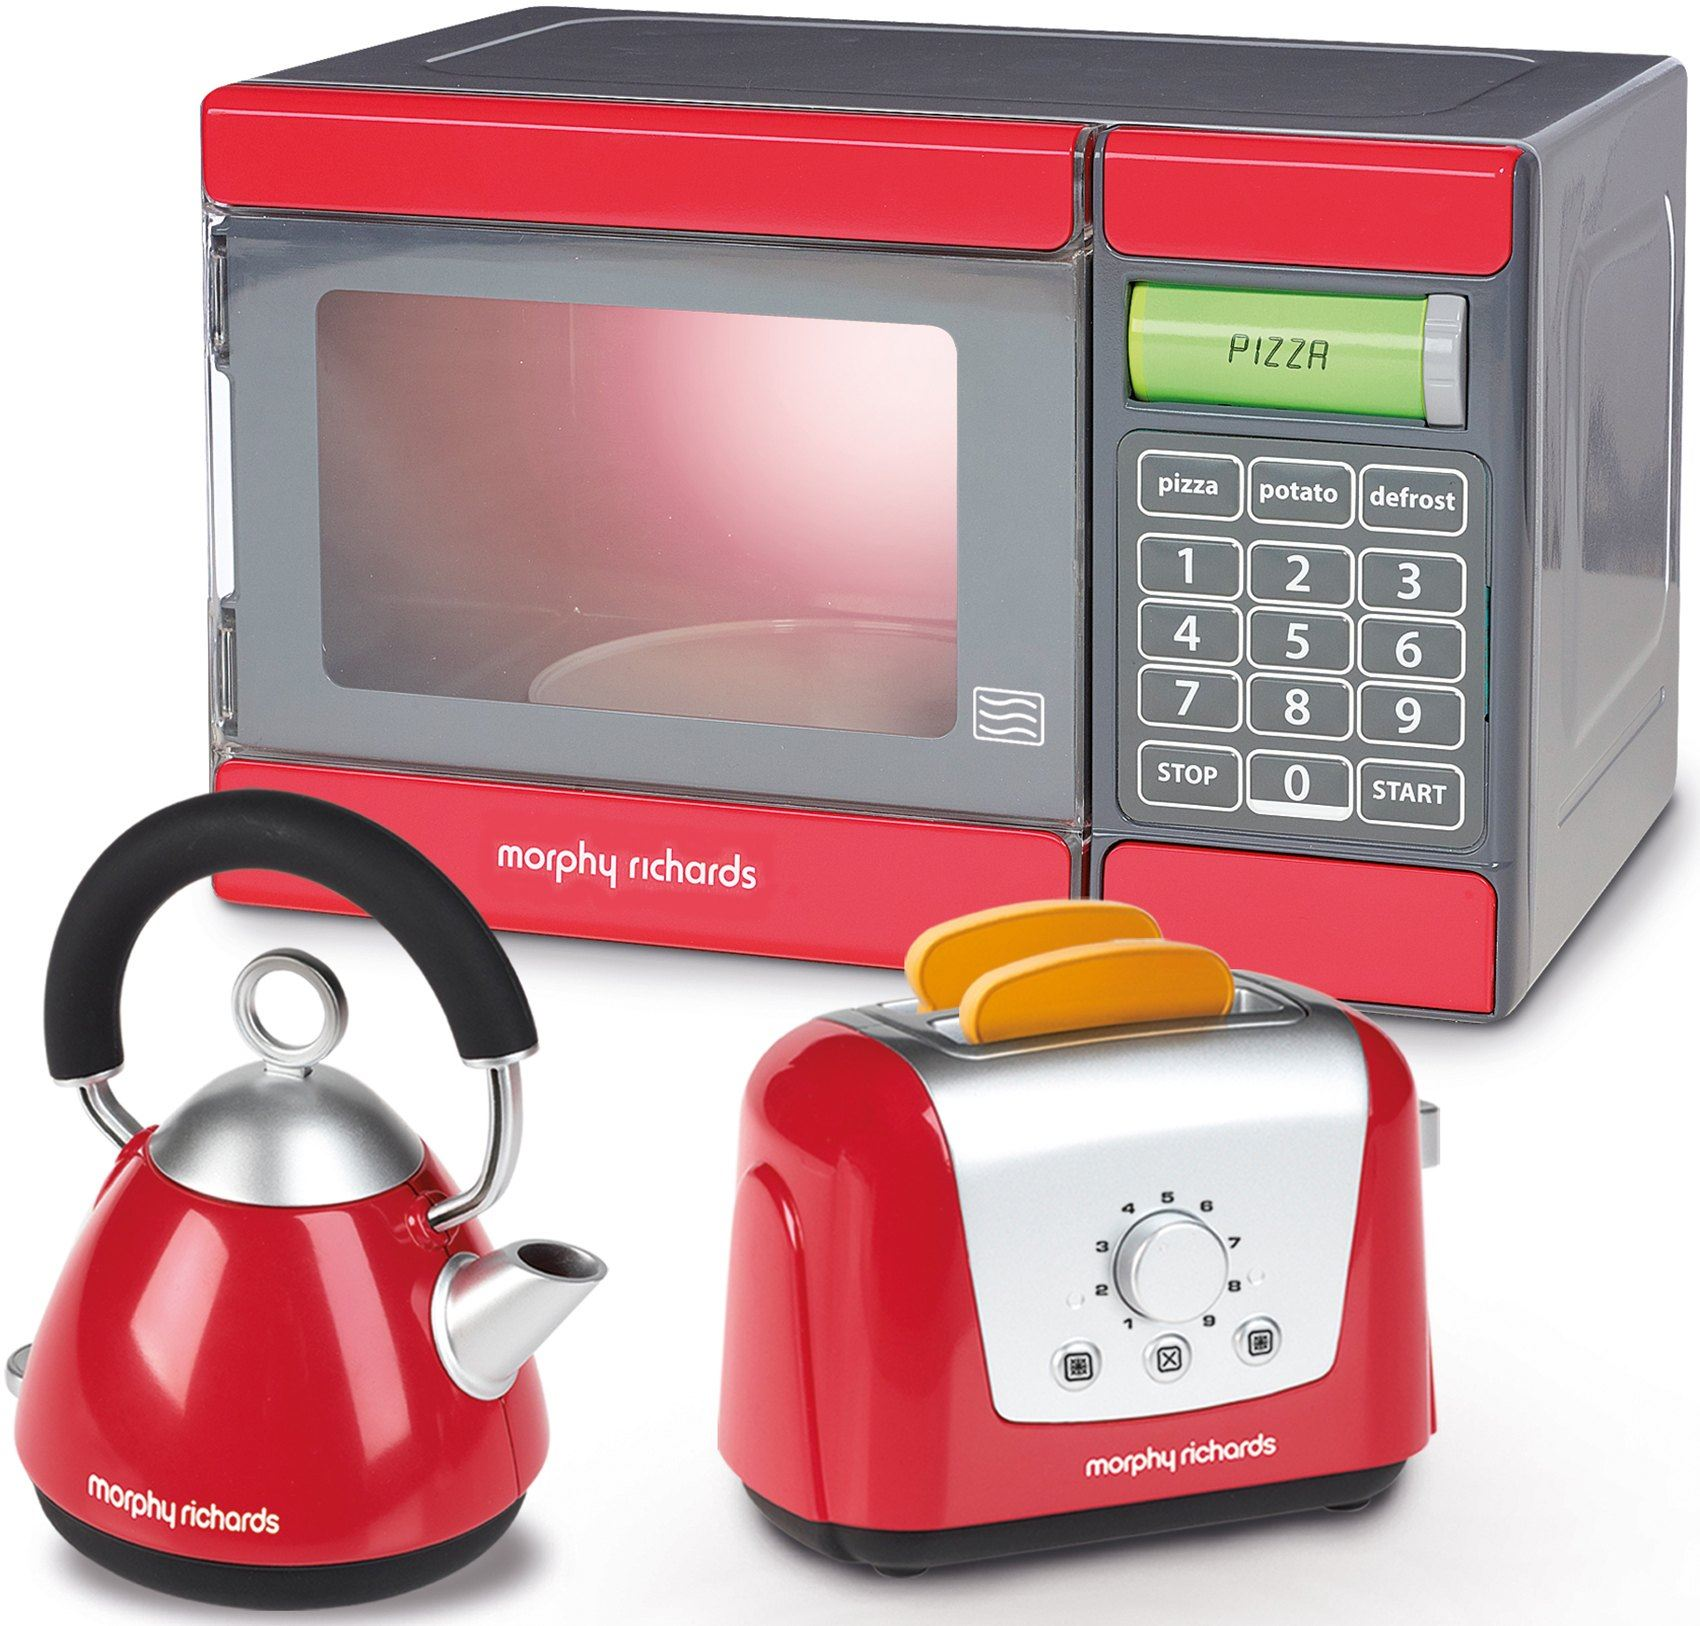 Morphy Richards Microwave: Casdon MORPHY RICHARDS MICROWAVE, KETTLE & TOASTER SET Role Play Kids Toy BN 5011551006804